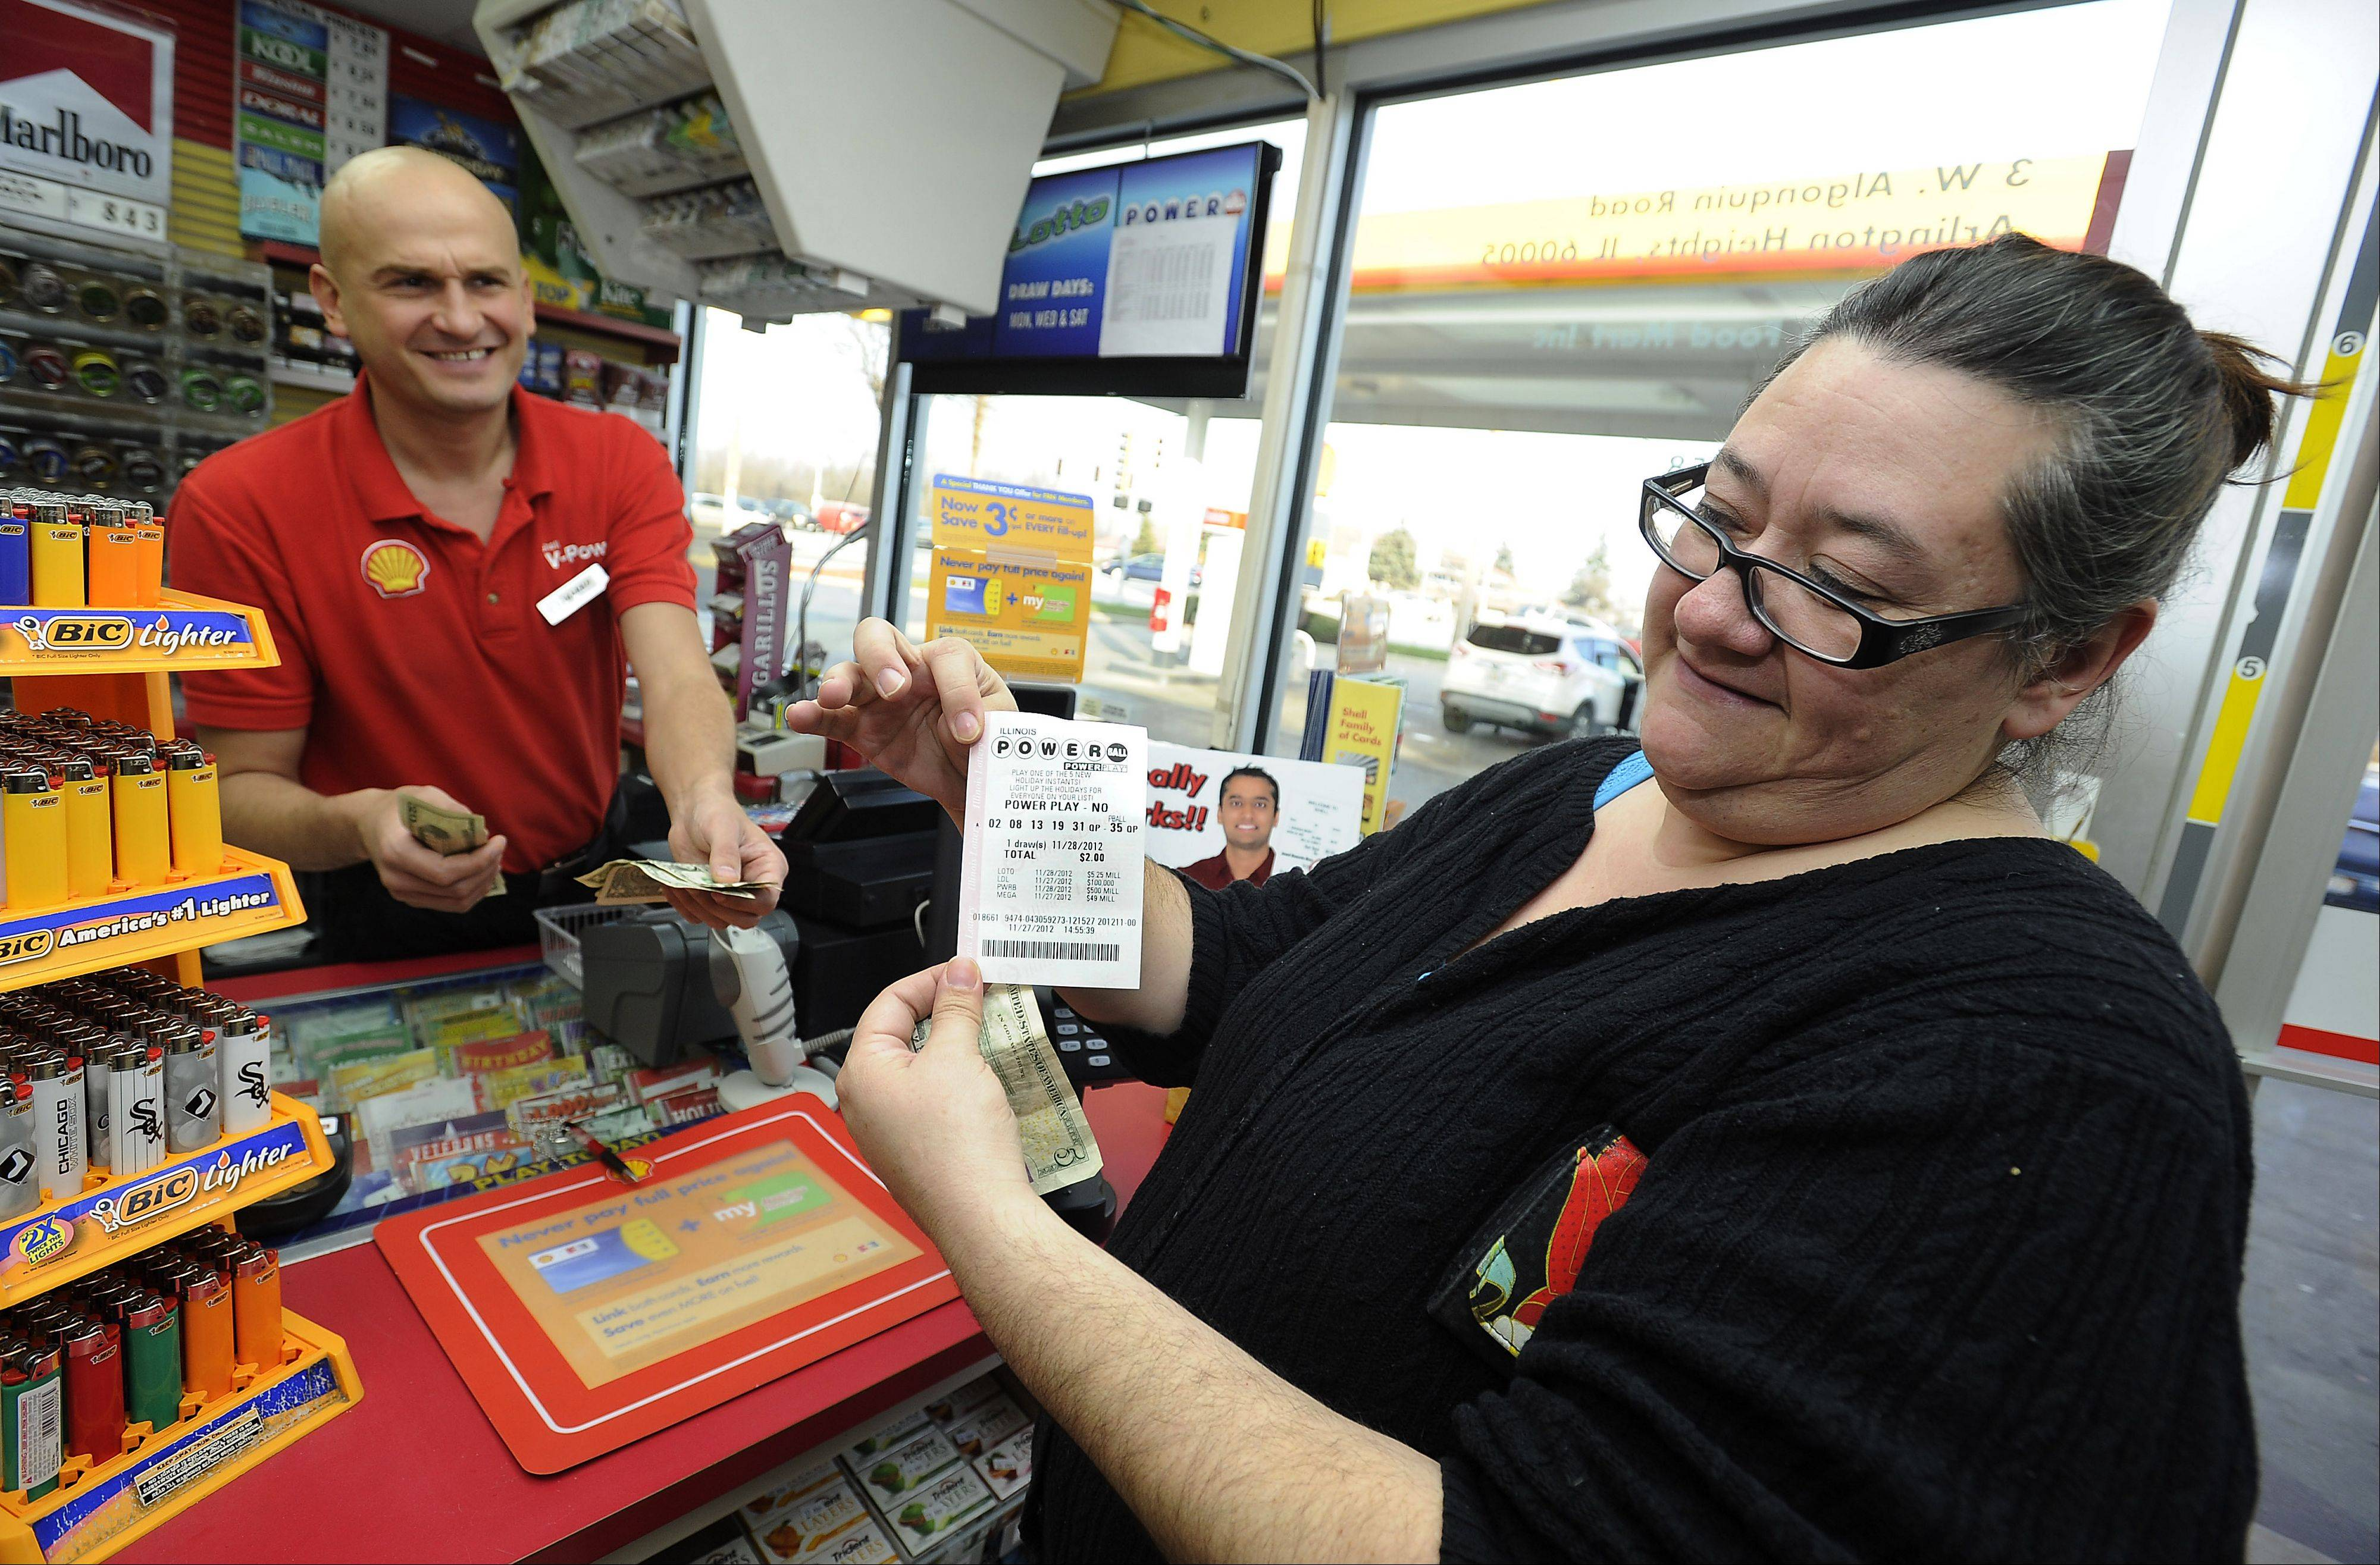 Diana Deleon of Chicago just purchased her $500 million powerball winning ticket (she hopes) from Shell gas station clerk Marko Stojiljkovic on Tuesday, one day before the big drawing.